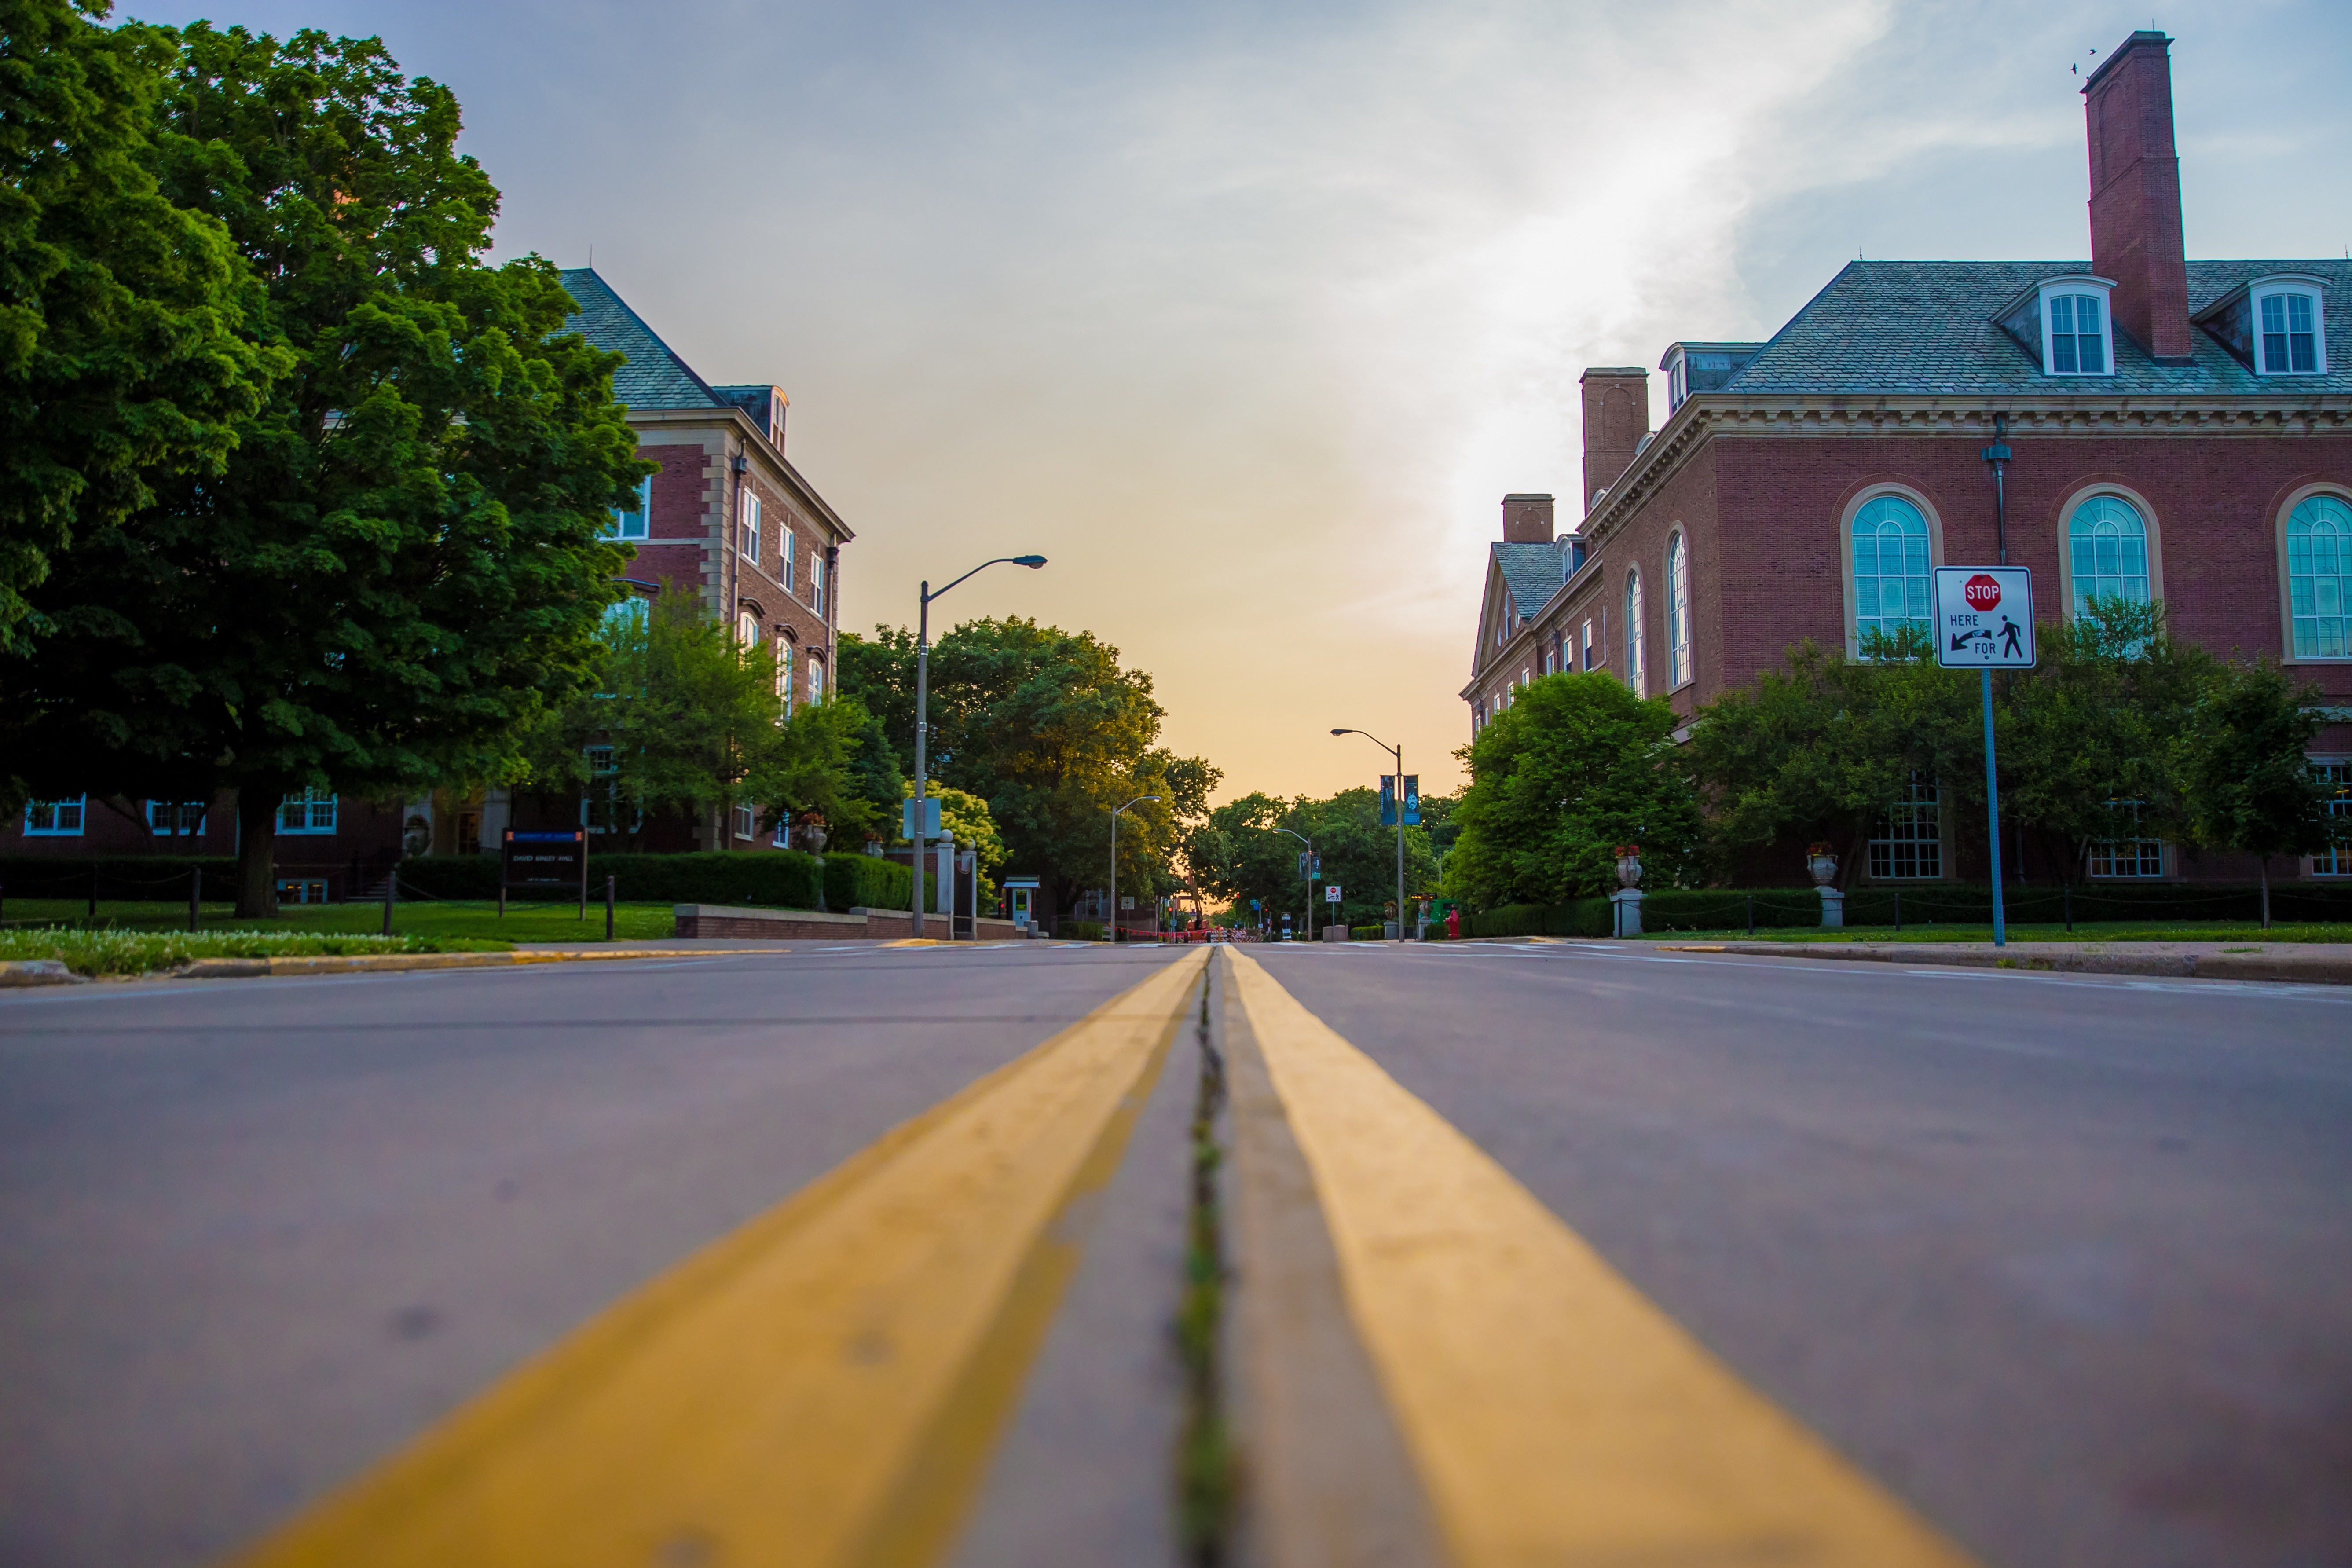 College buildings and street